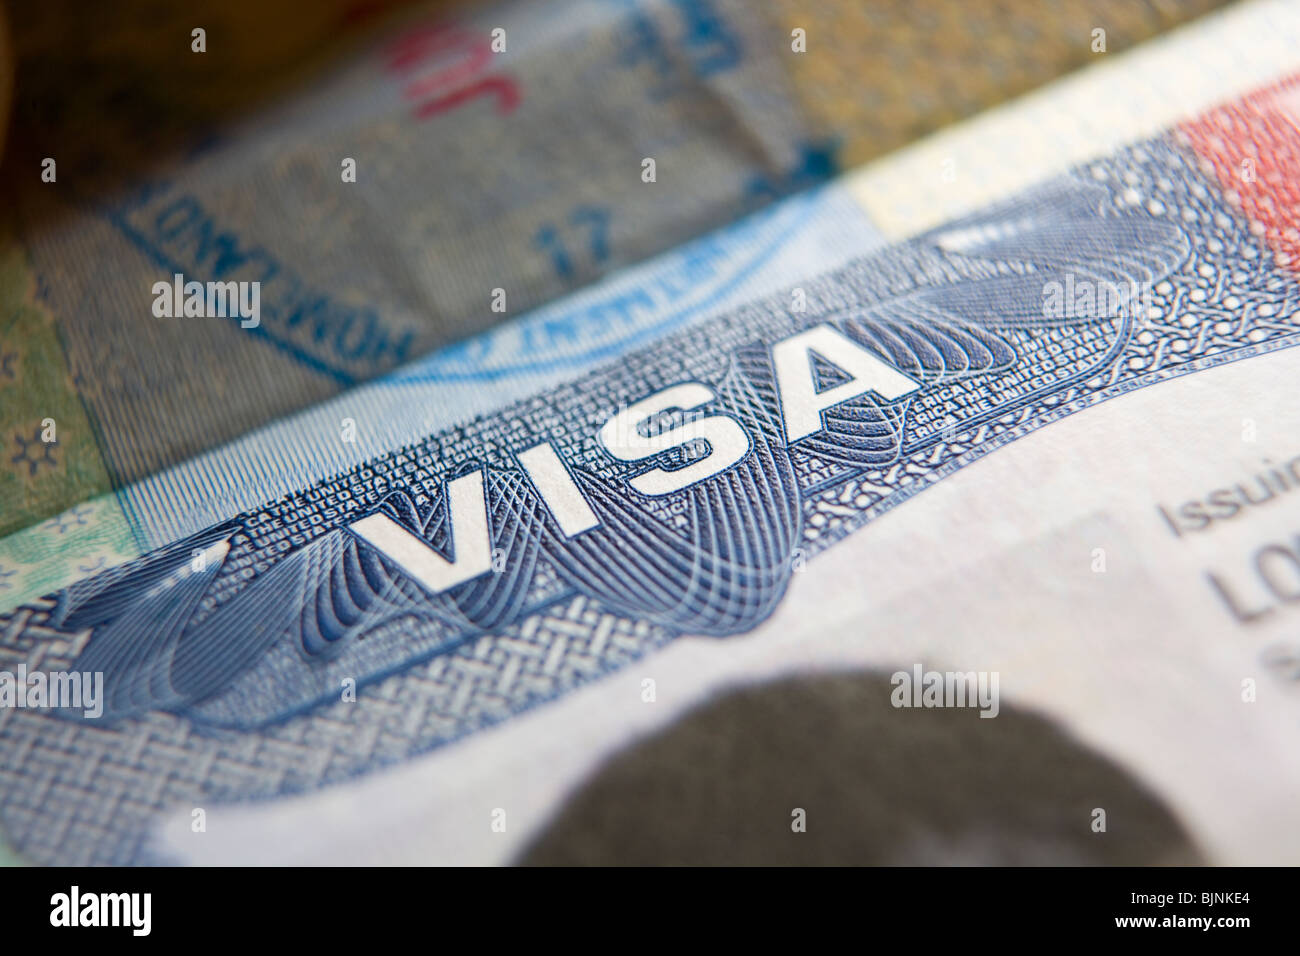 United States Travel Visa - Stock Image